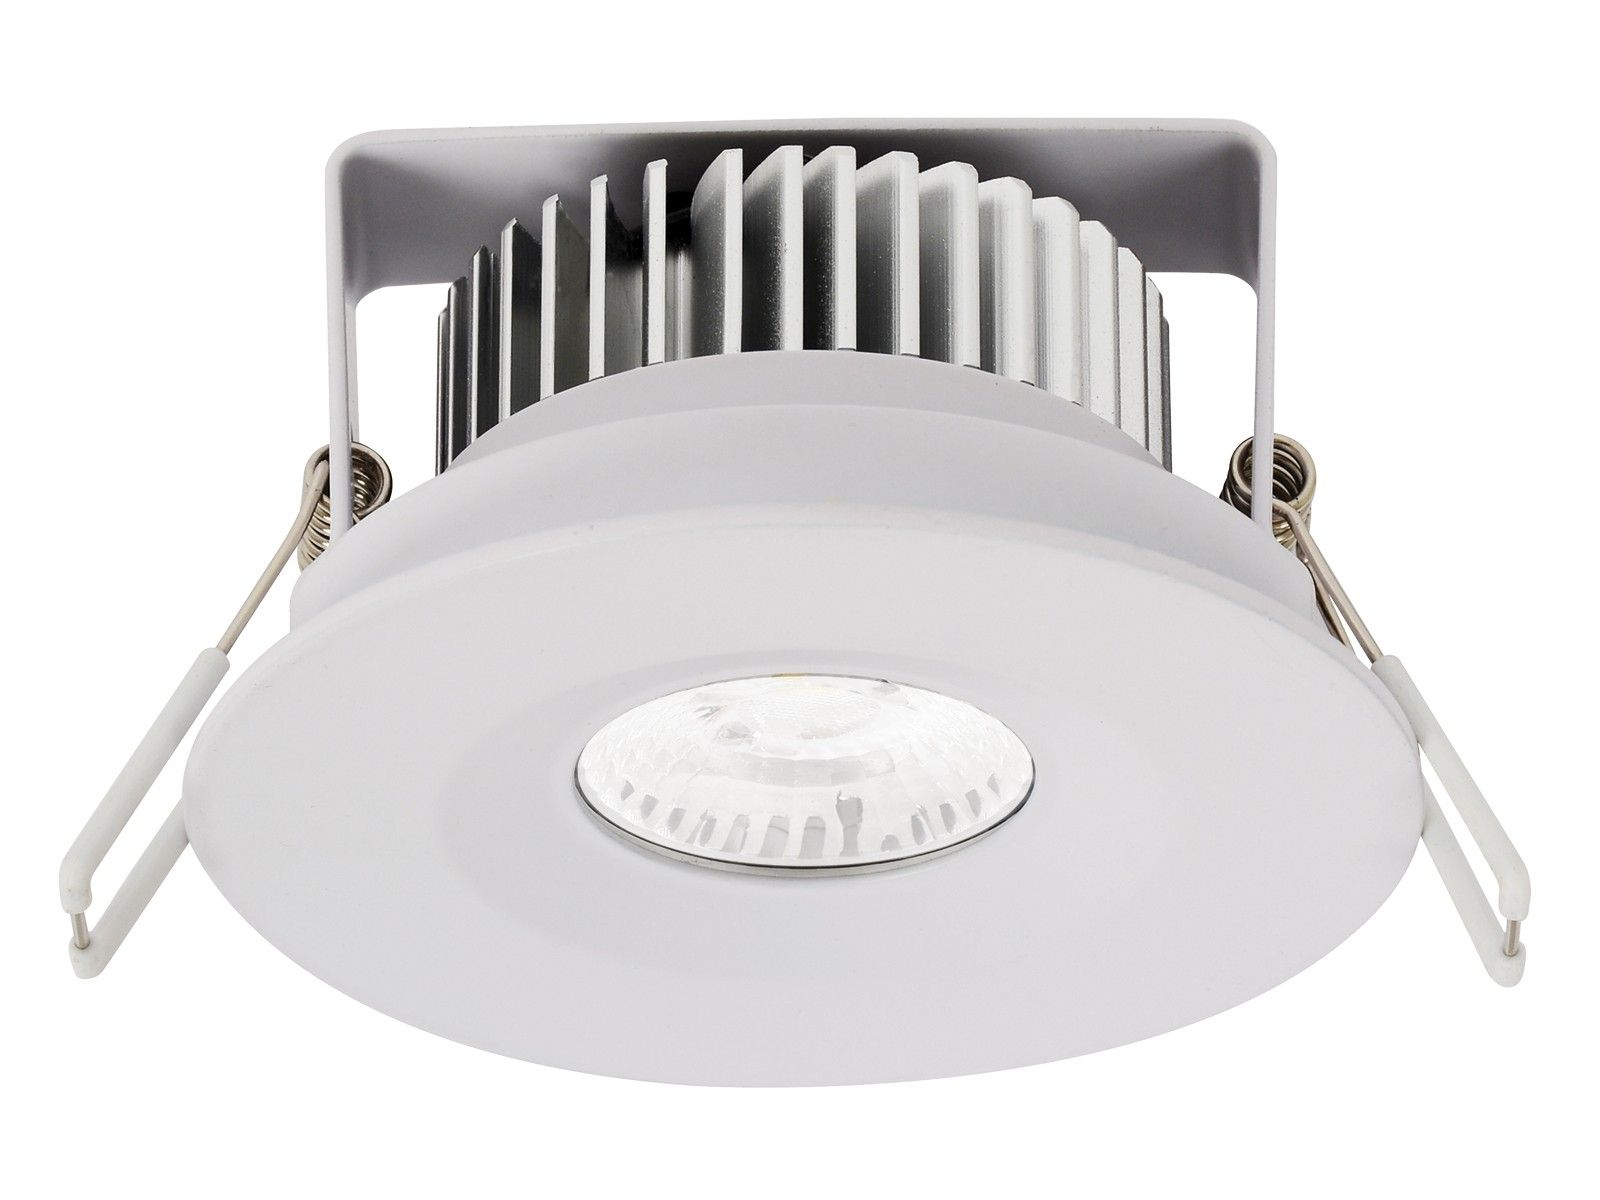 Ledlux City Ii Fixed Led White Dimmable Downlight In Warm White Downlights Ceiling Fan Installation Led